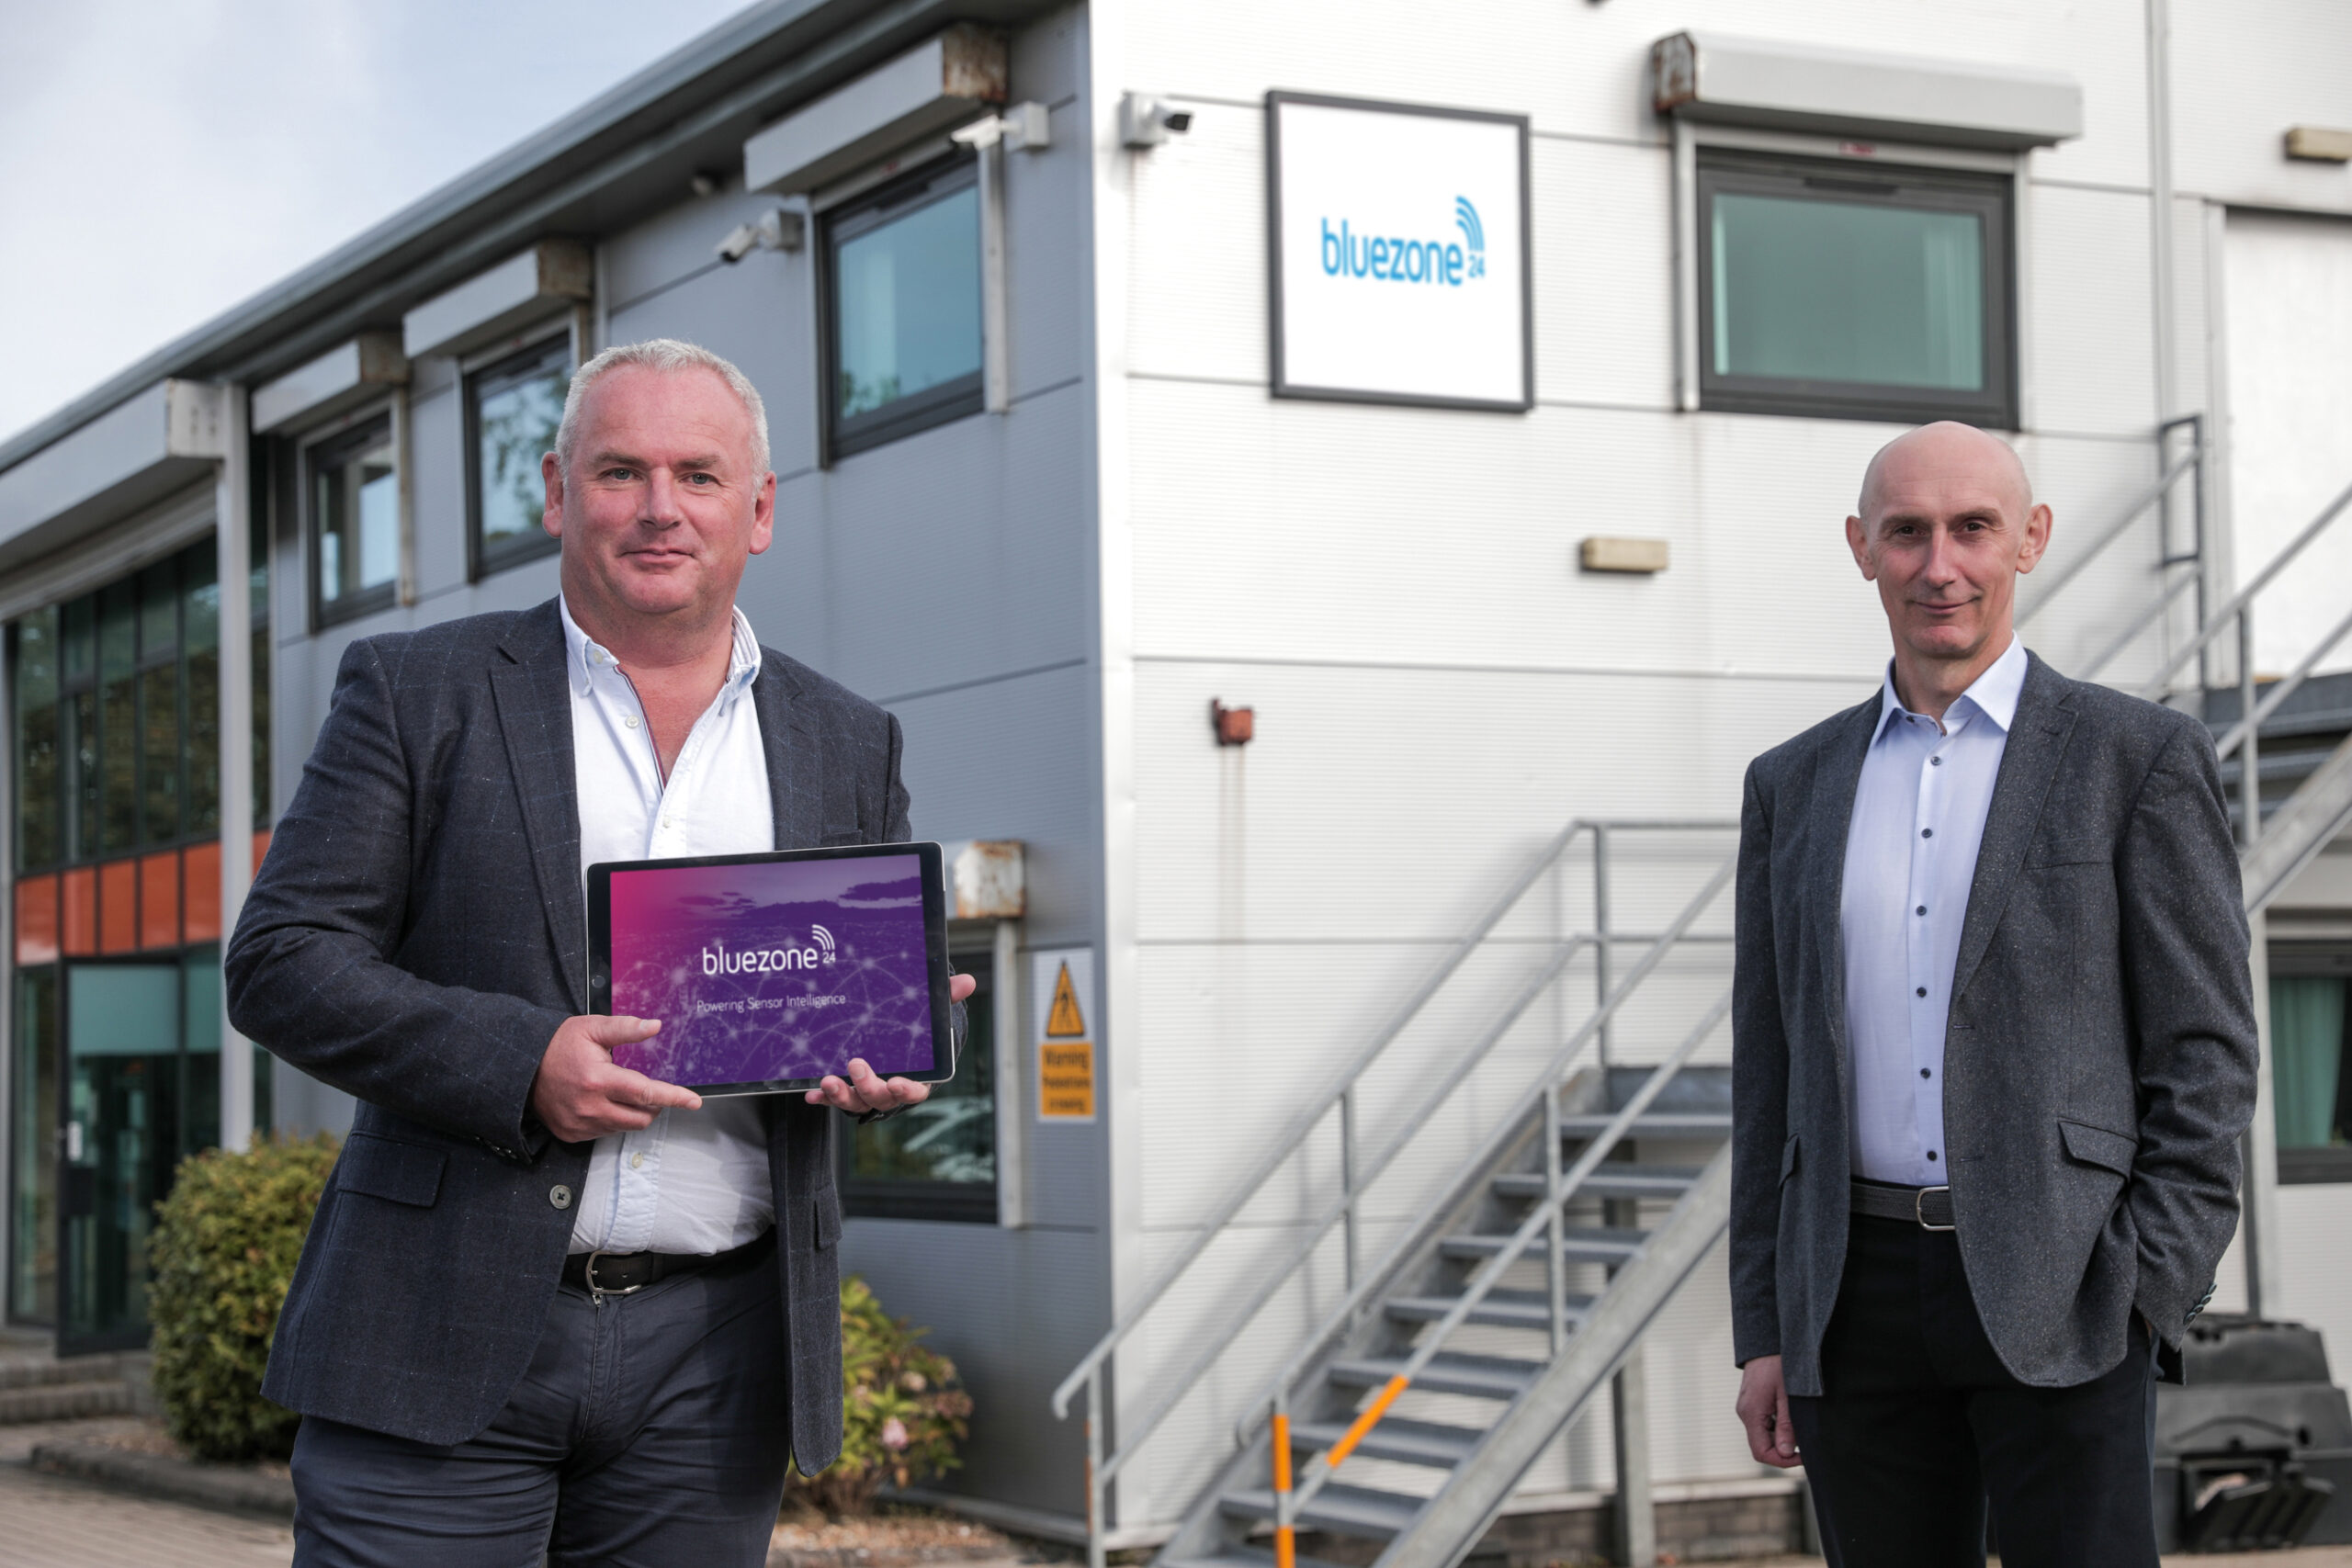 Photographed at the launch of Bluezone Technologies' 'no touch' Legionella management system are (L to R) Adrian Byrne, CEO & Pat McDonald, Technical Director at Bluezone Technologies' Newry-based headquarters